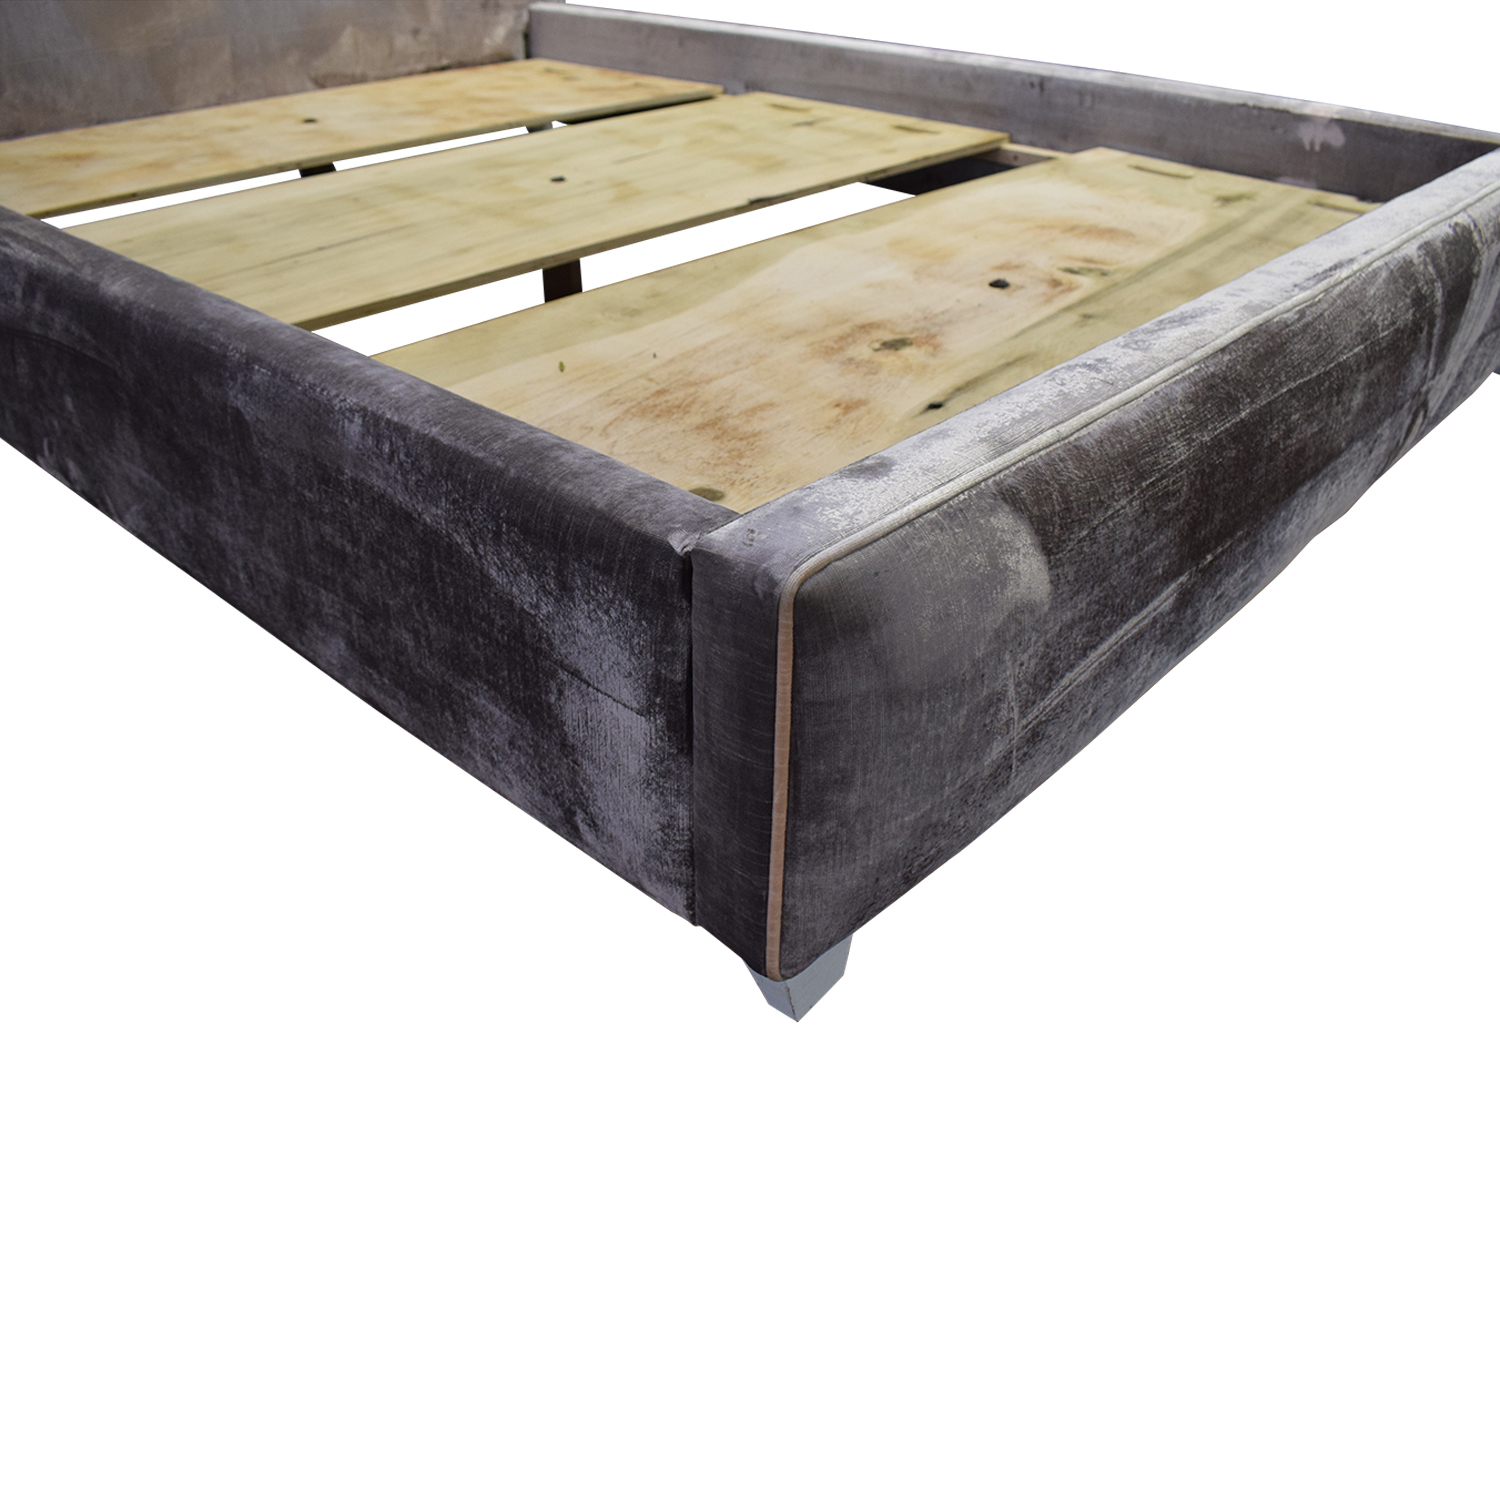 Jonathan Adler Woodhouse Queen Bed Frame / Beds